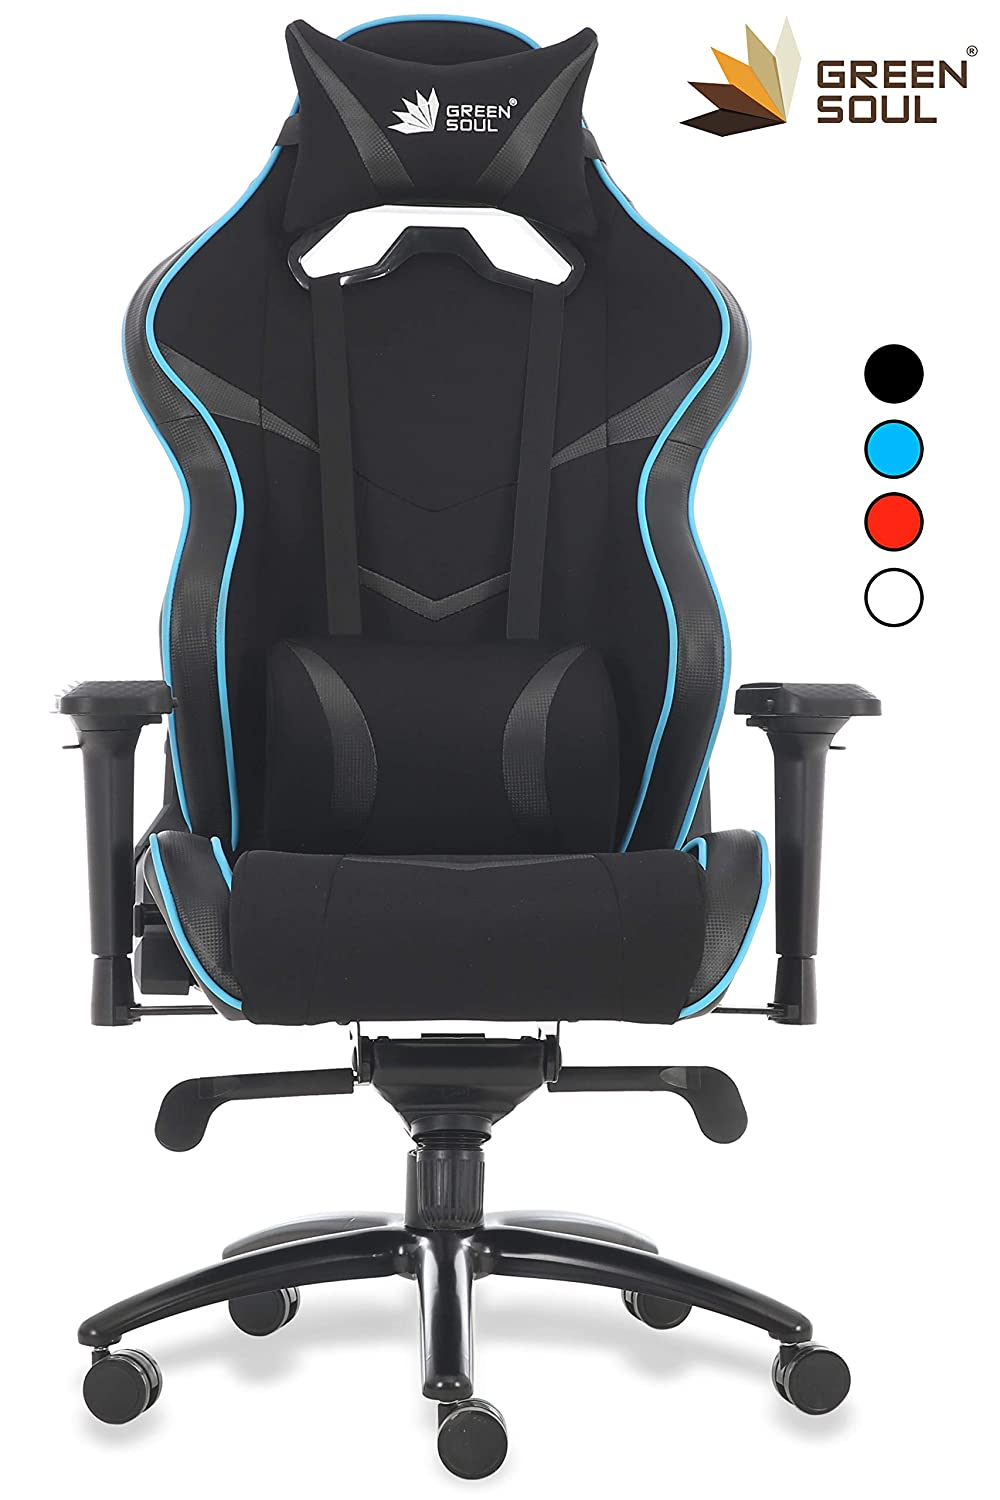 GreenSoul Monster Pro Series Gaming/Ergonomic Chair in